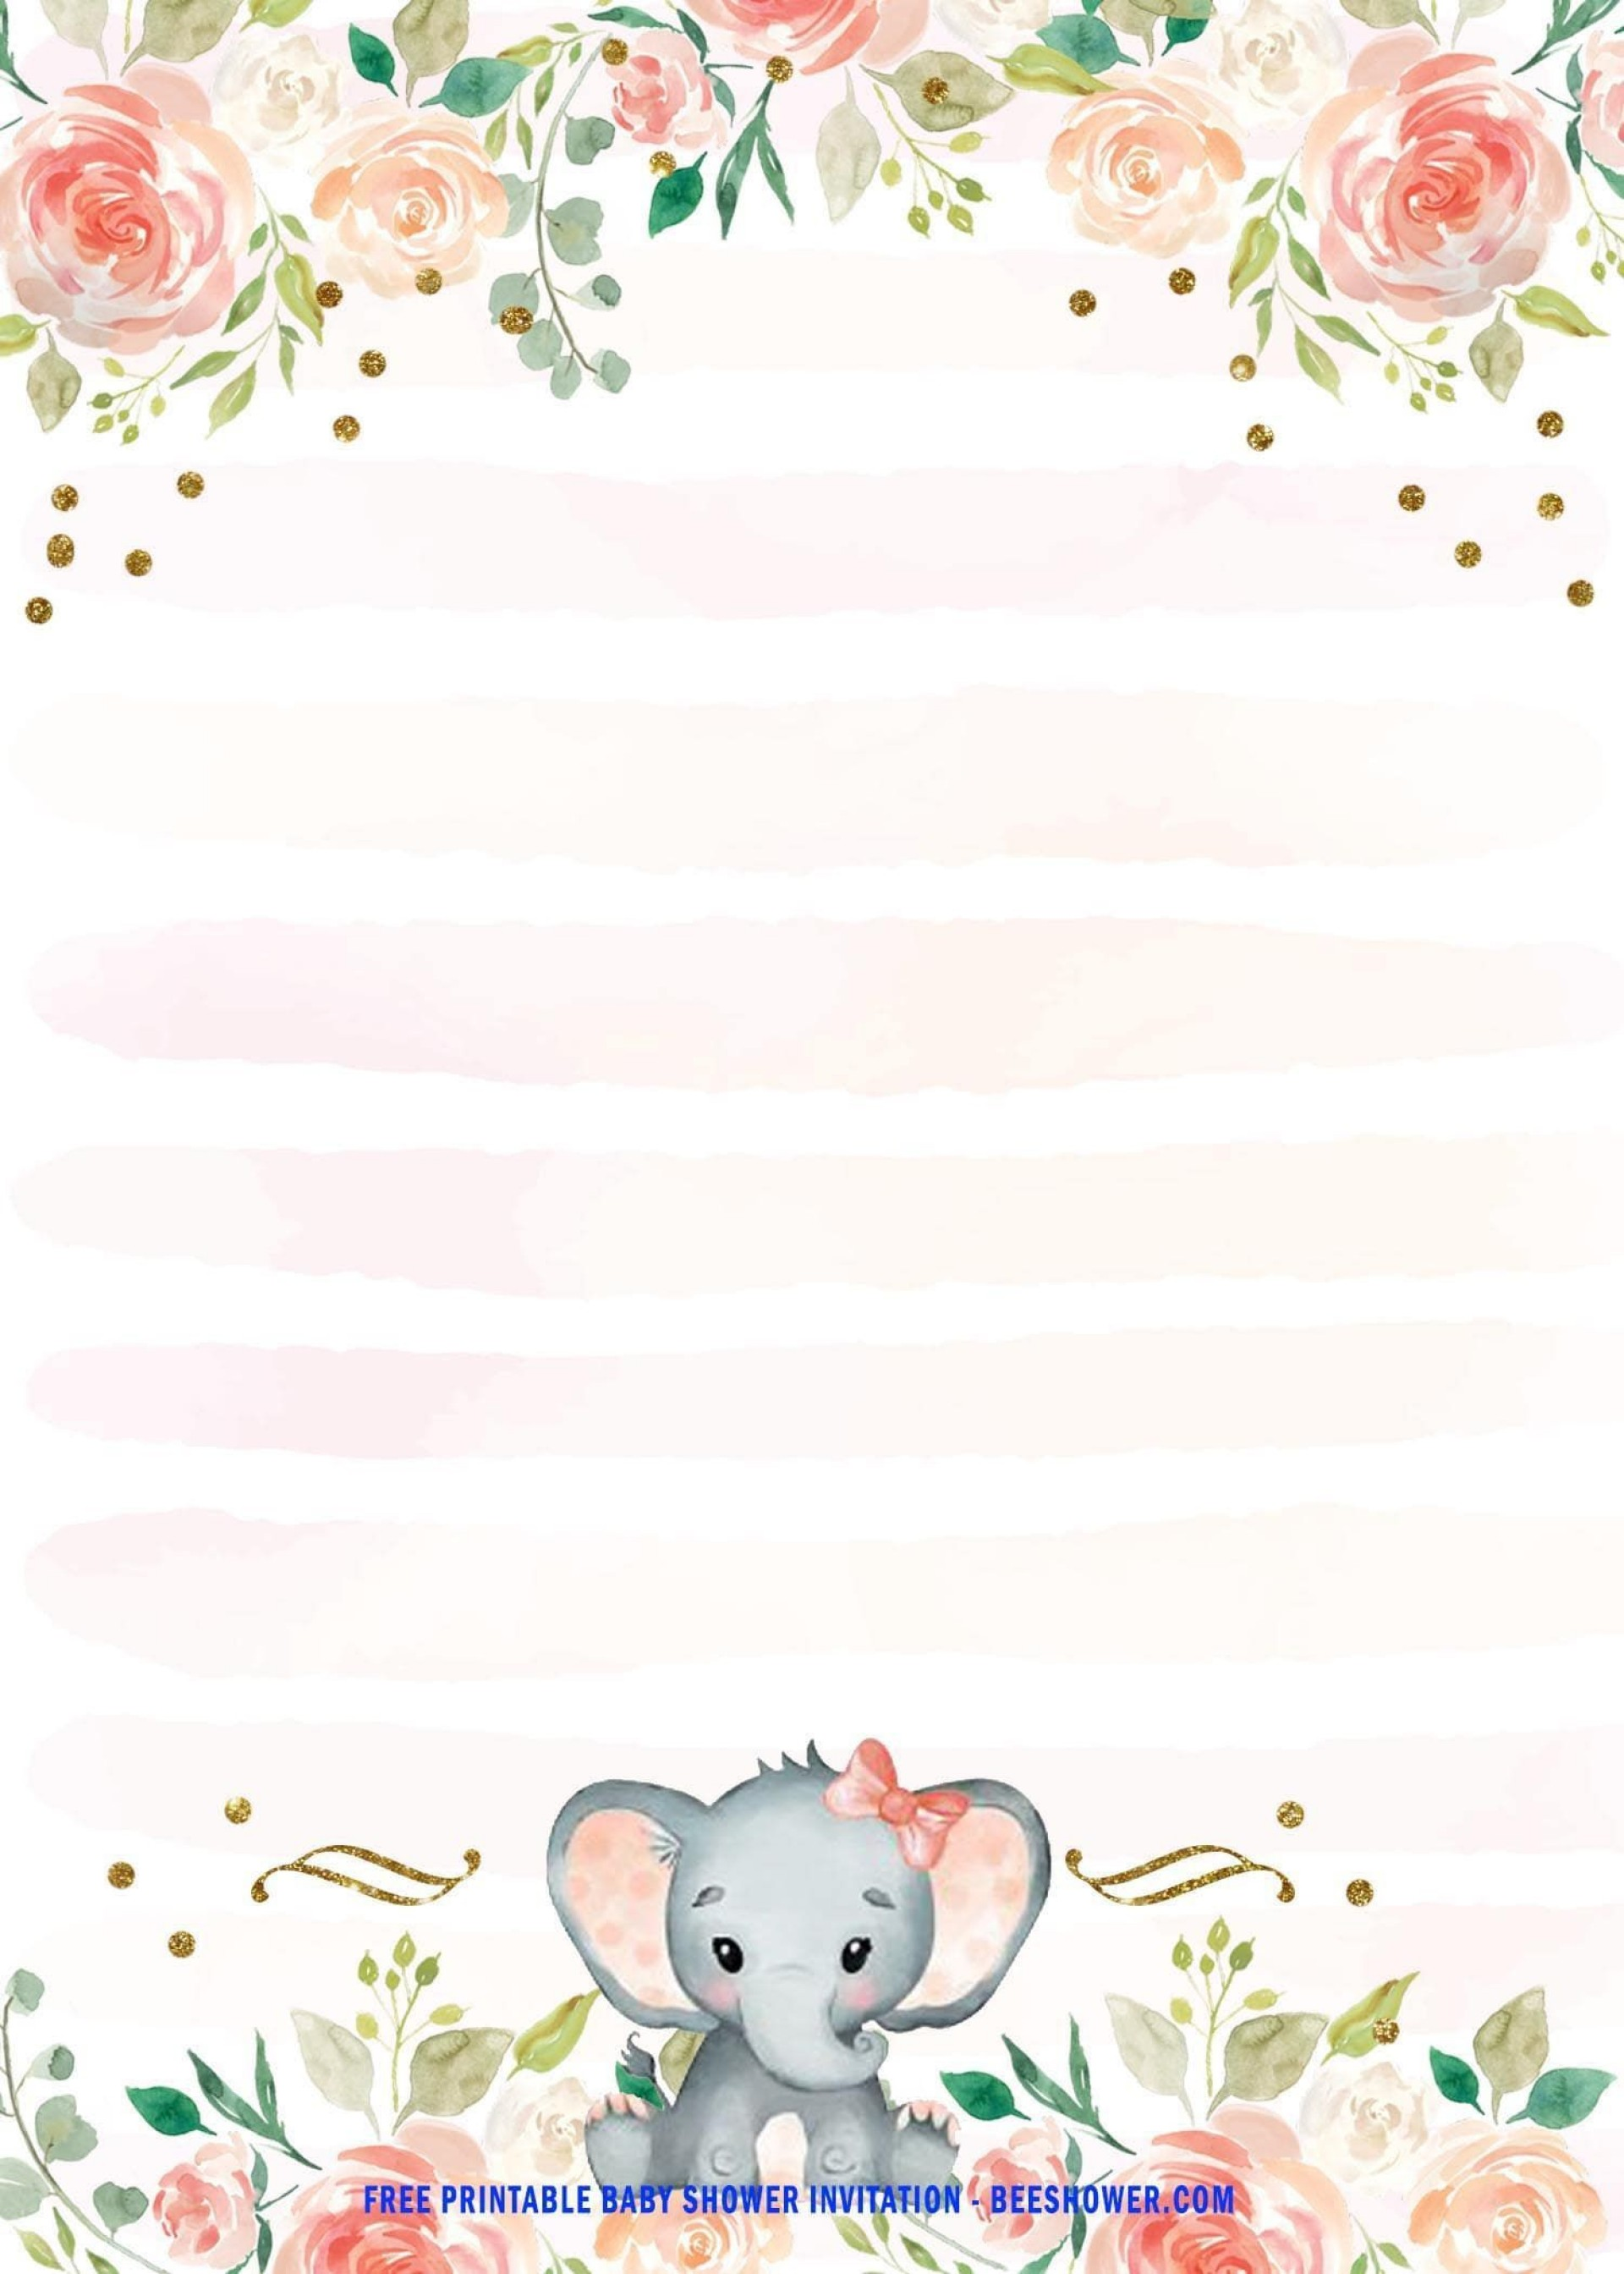 004 Archaicawful Free Girl Baby Shower Invitation To Print Picture  Printable Twin1920